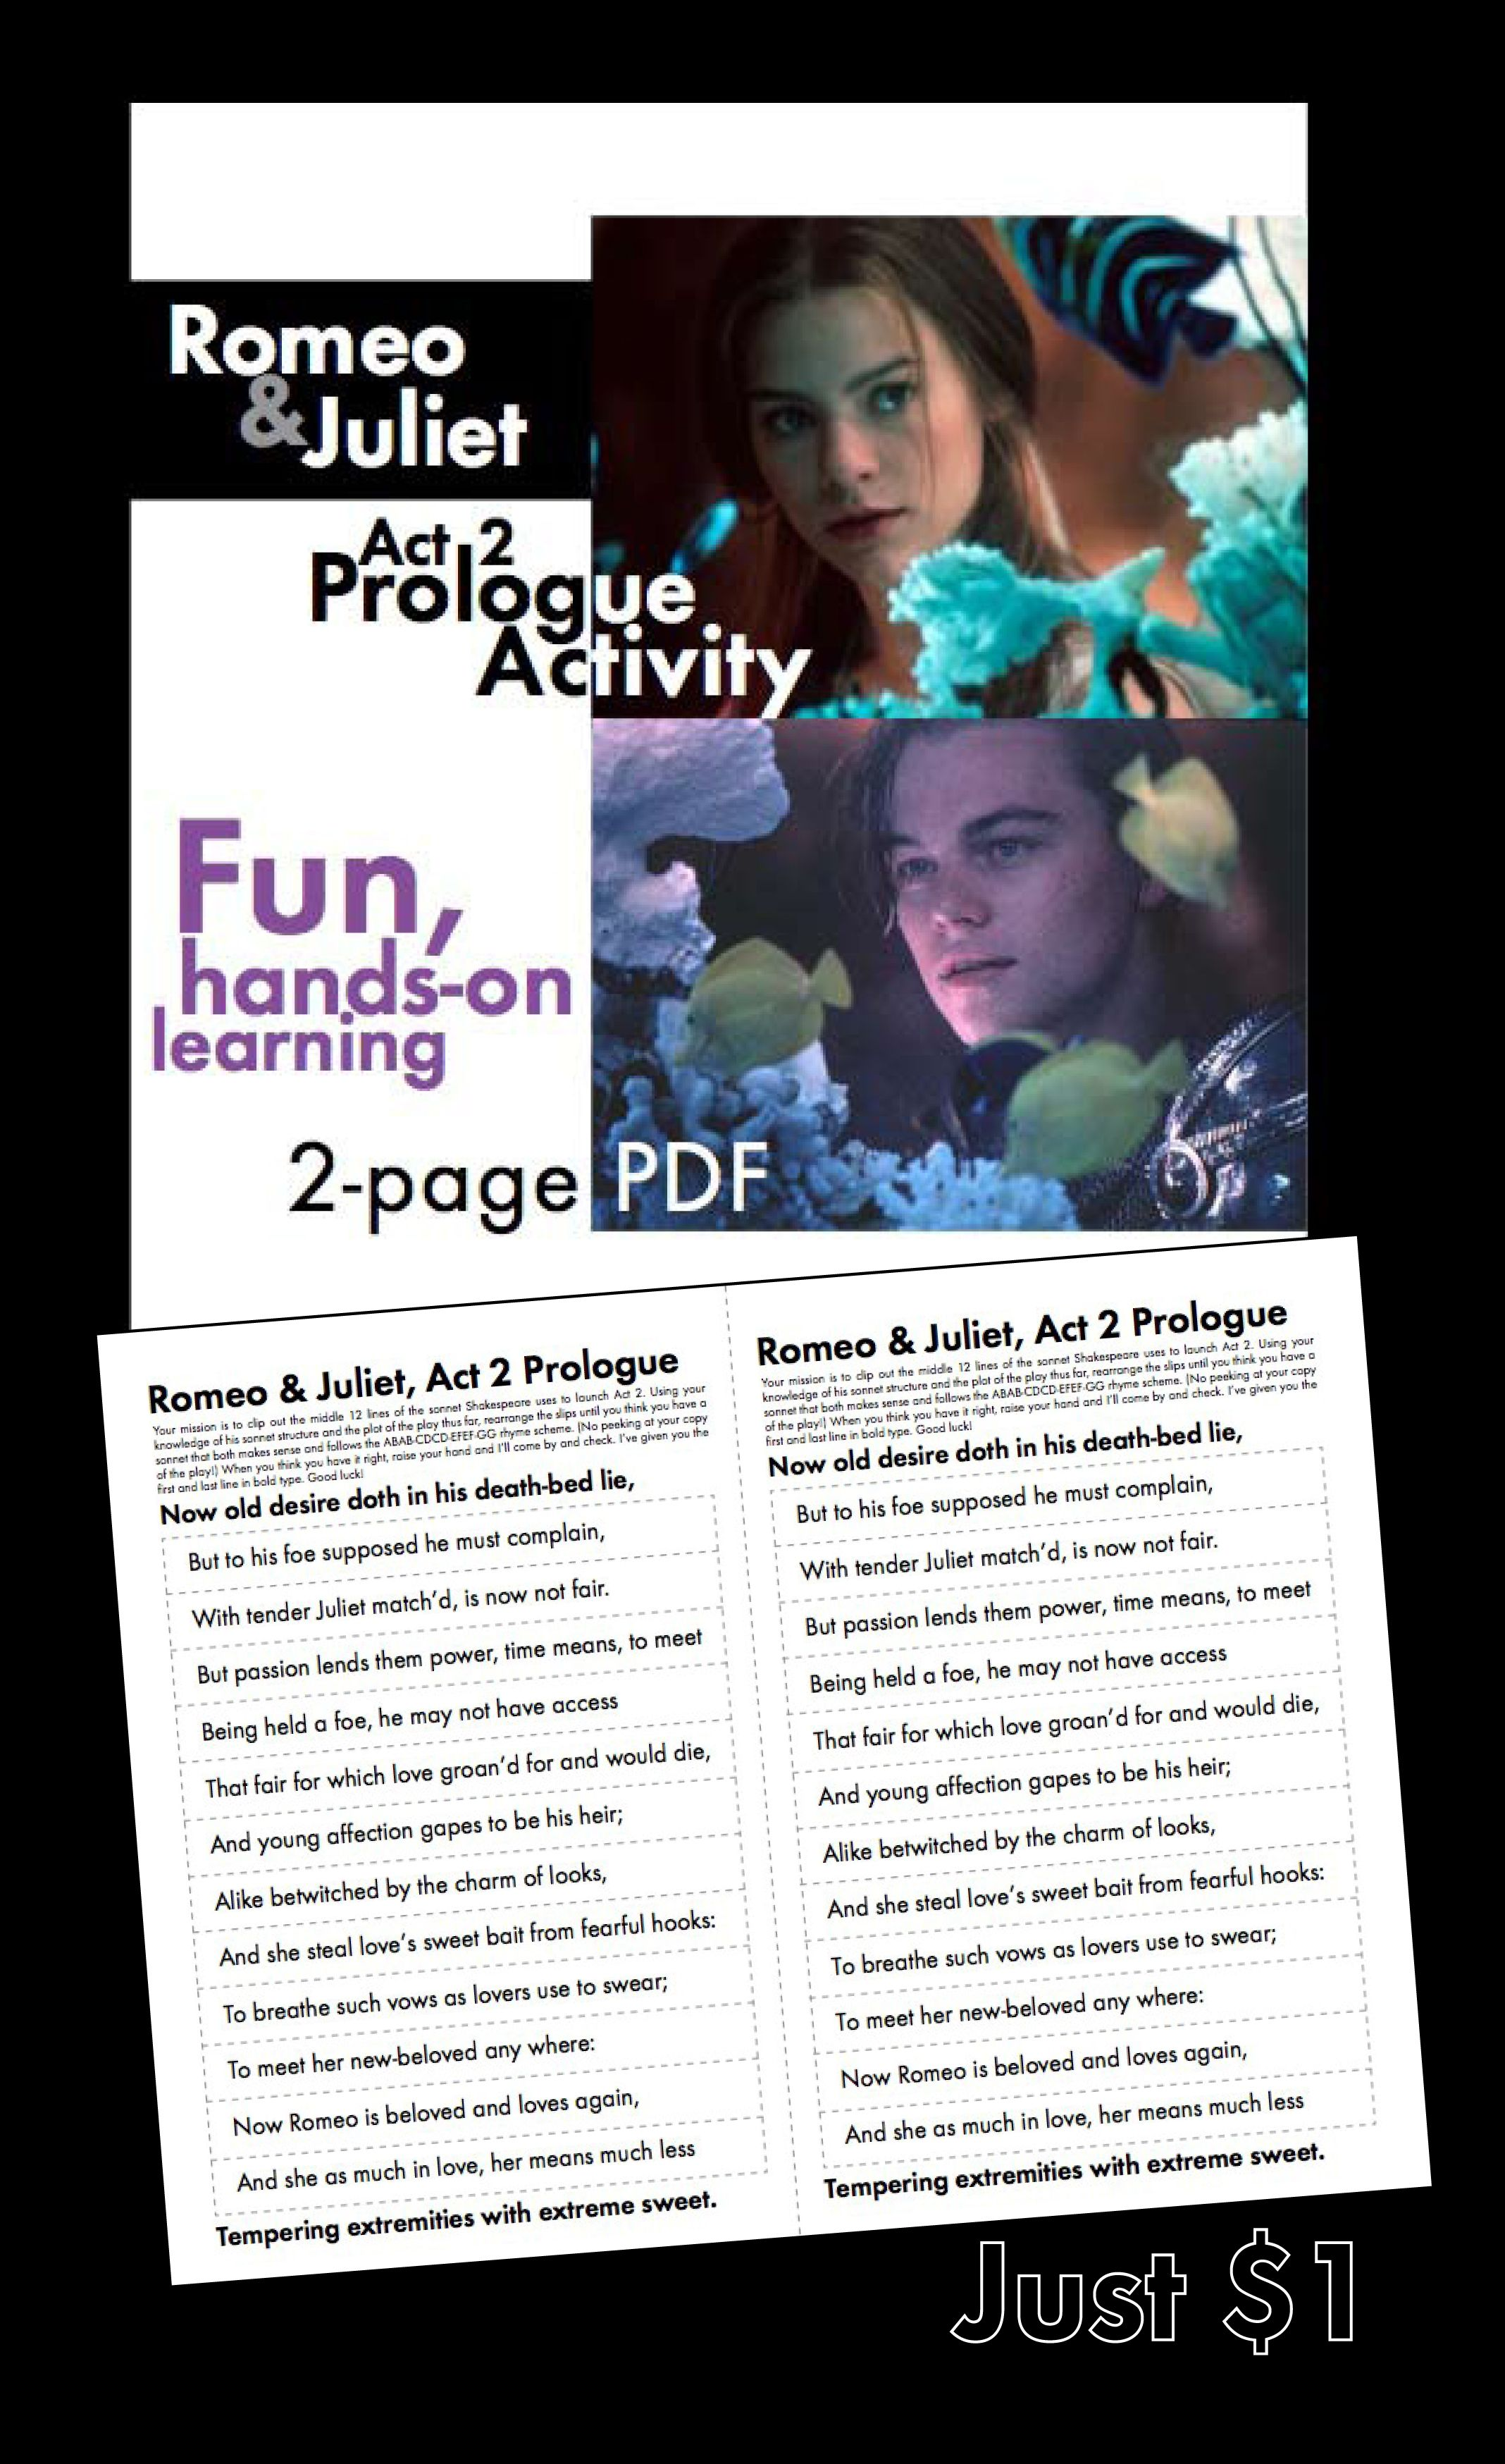 Romeo And Juliet Act 2 Prologue Fun Hands On Activity With Shakespeare S Play